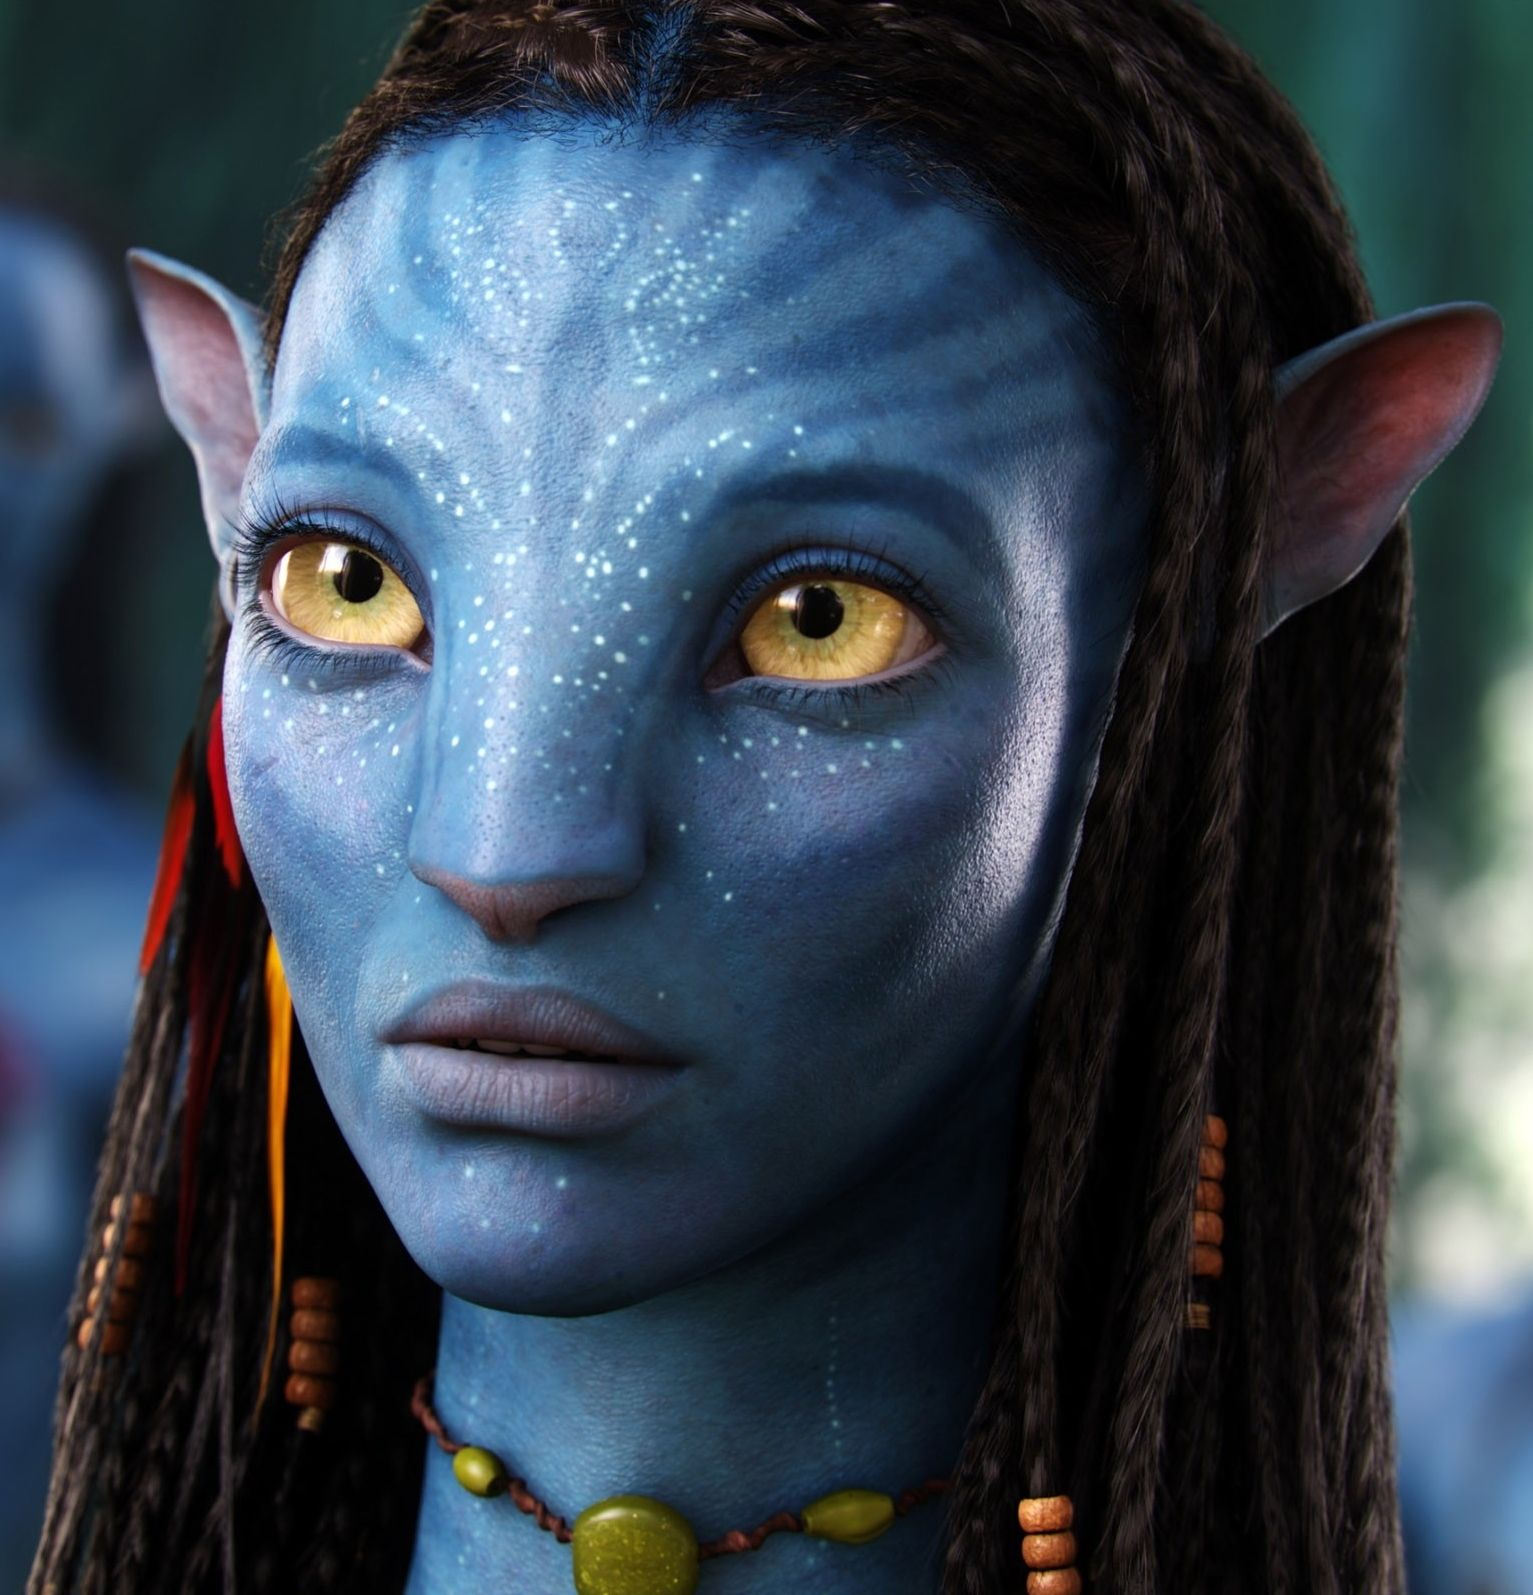 Avatar 3: Neytiri(Avatar) Played By Zoe Saldana